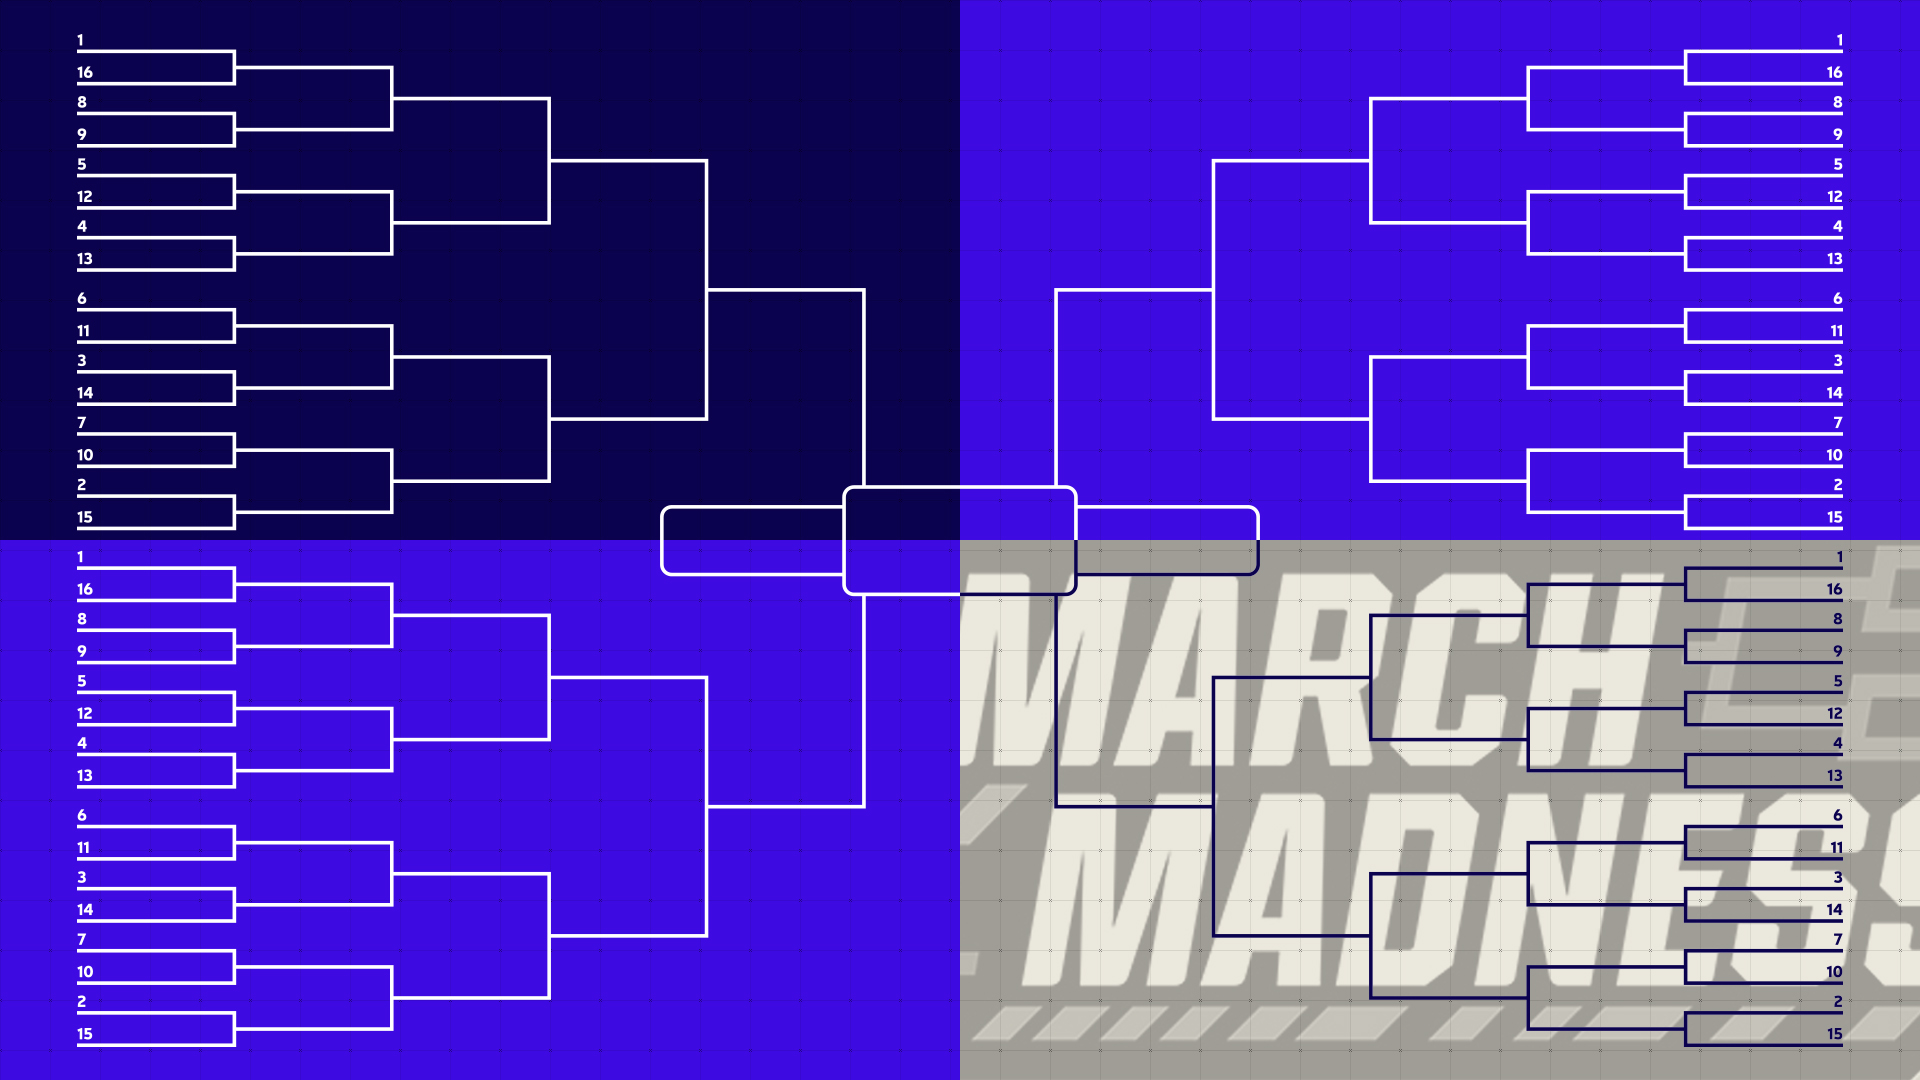 March Madness schedule today: Times, channels, scores for Saturday's Round 1 NCAA Tournament games